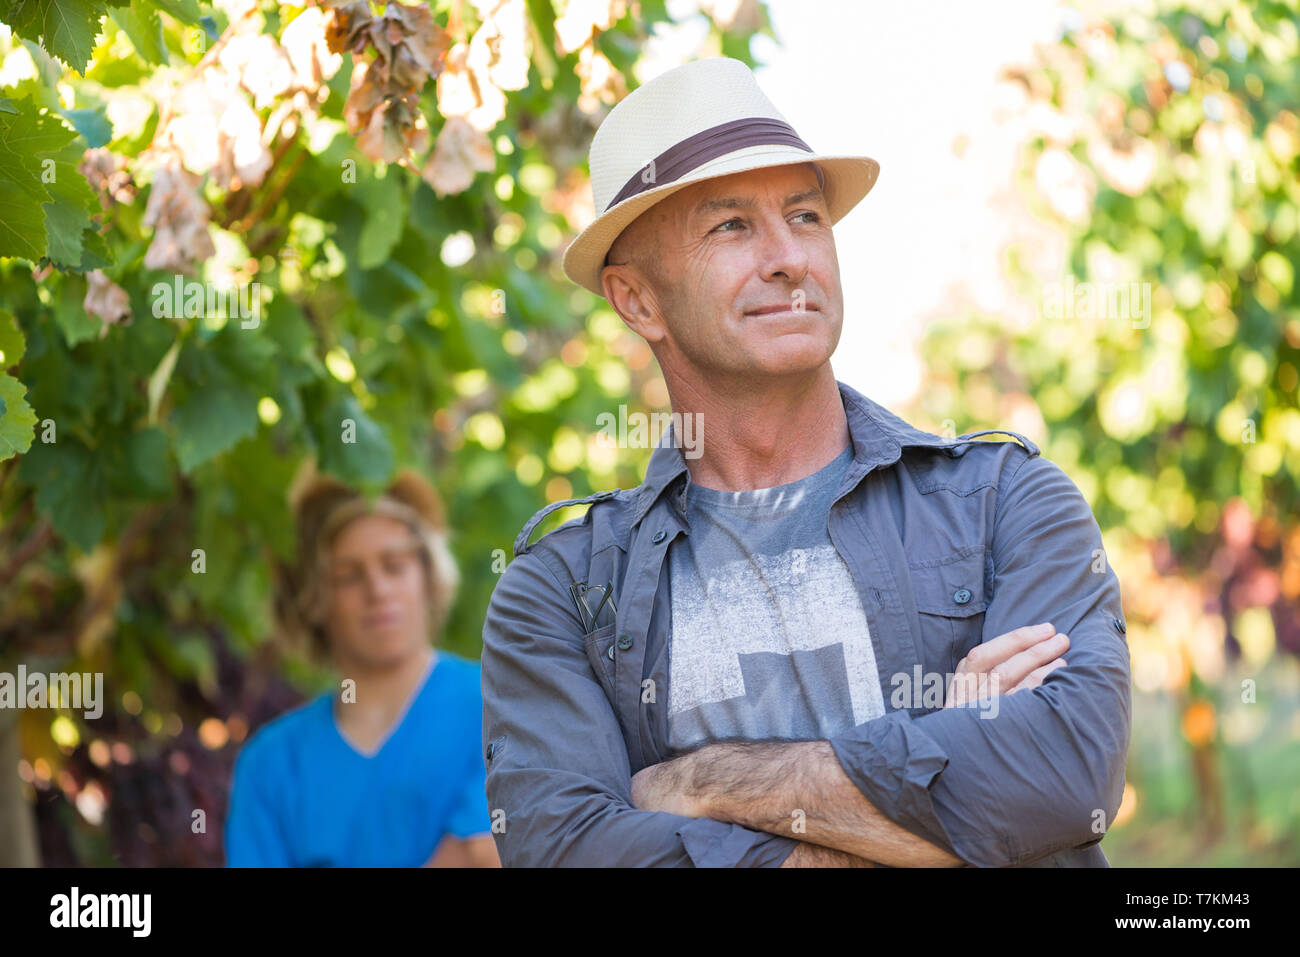 Successful winemaker at their vineyard - Stock Image